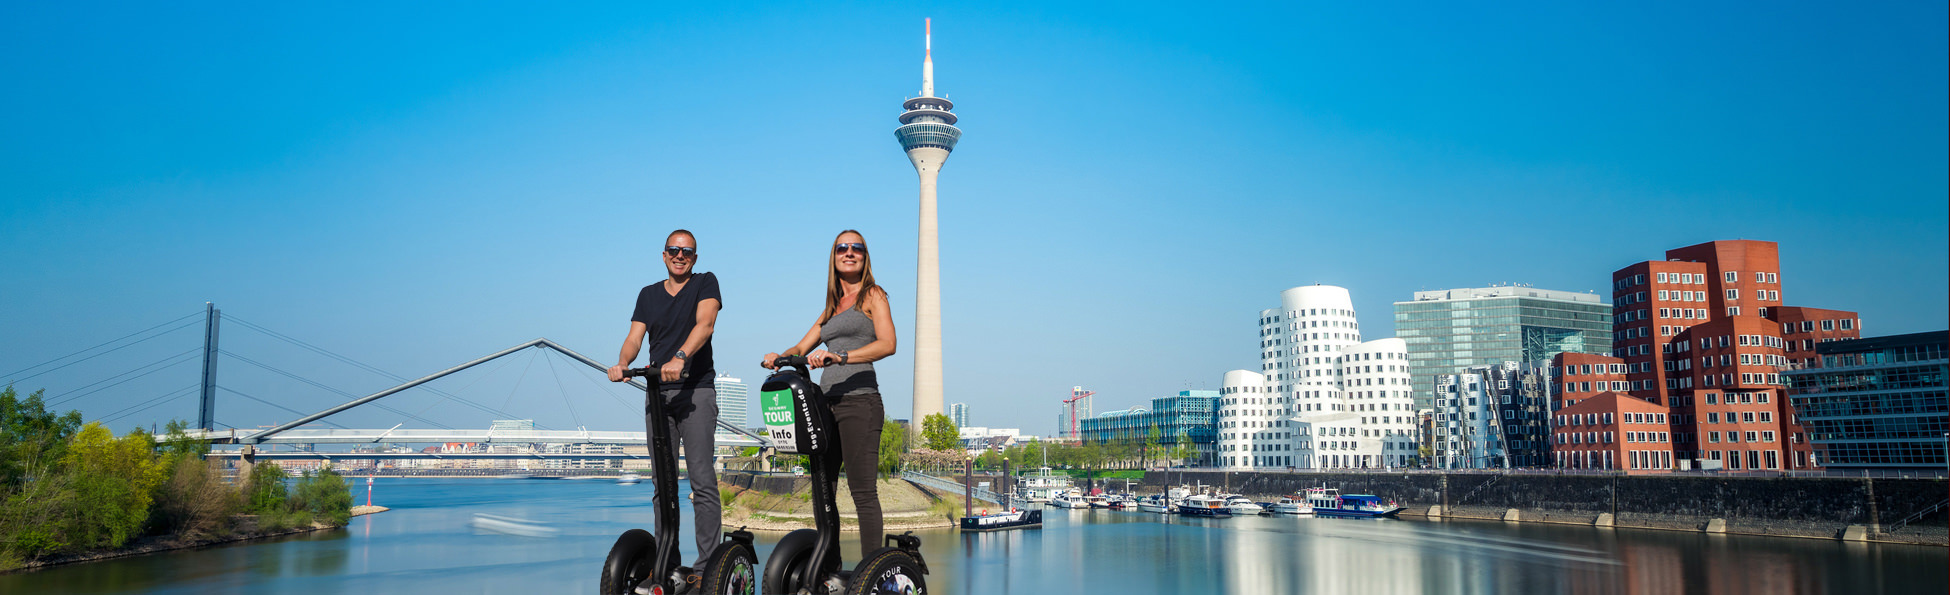 Segway City Tour Duesseldorf Germany